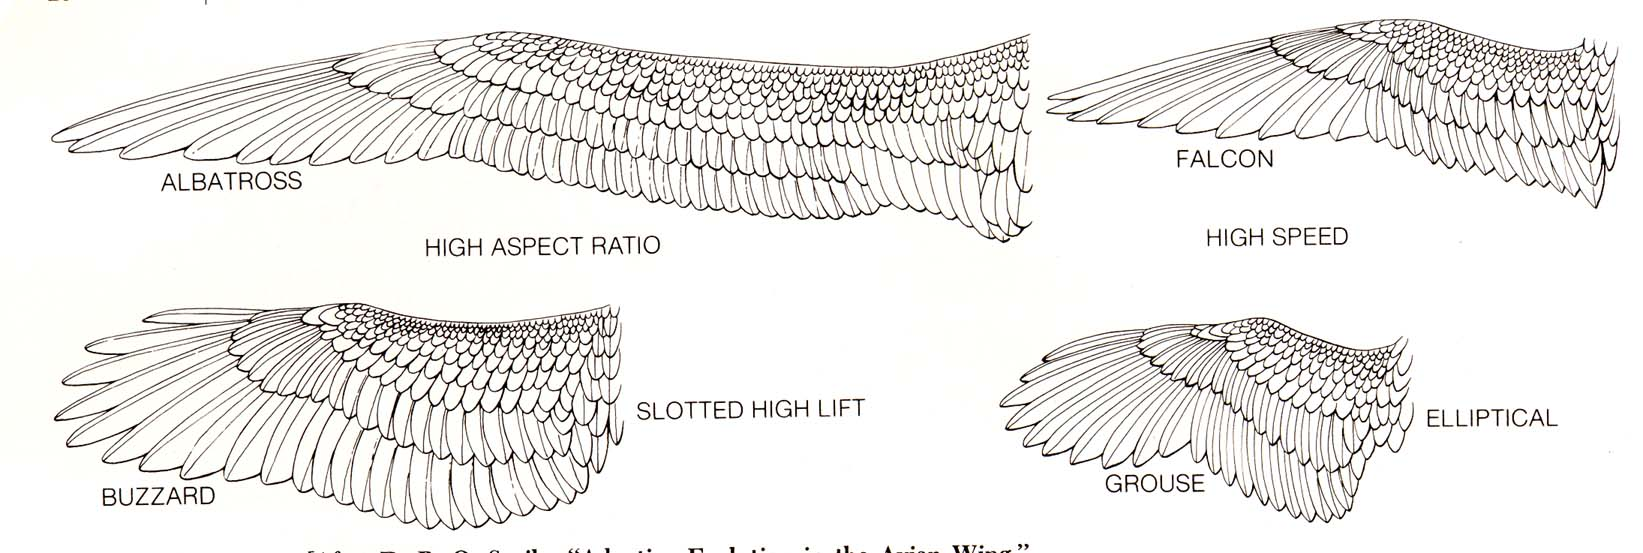 index of courses cse460 00sp final referencegeneral bird Diagram of Herb wing design types 01